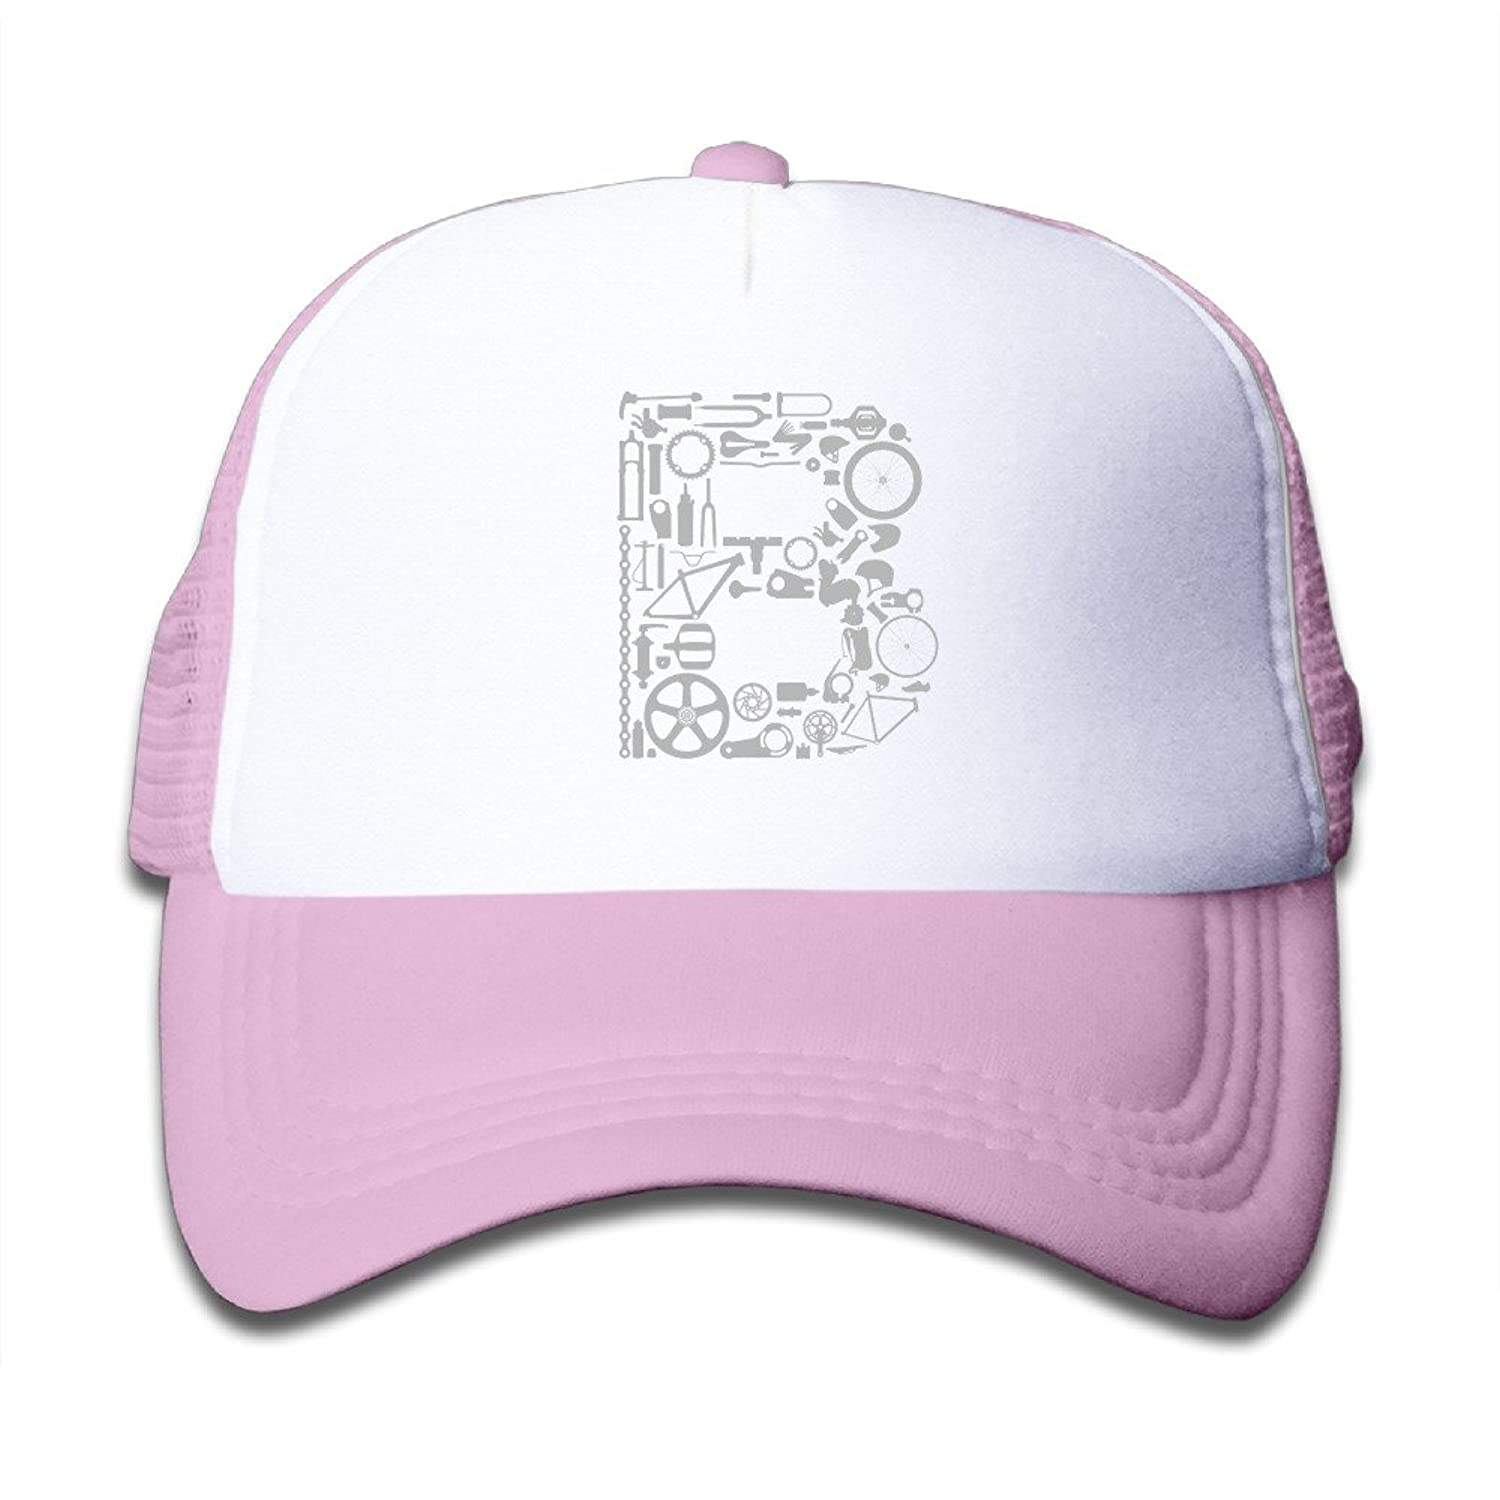 Printed Bike Girl Adjustable Mesh Trucker Cap Protection Boys Hats